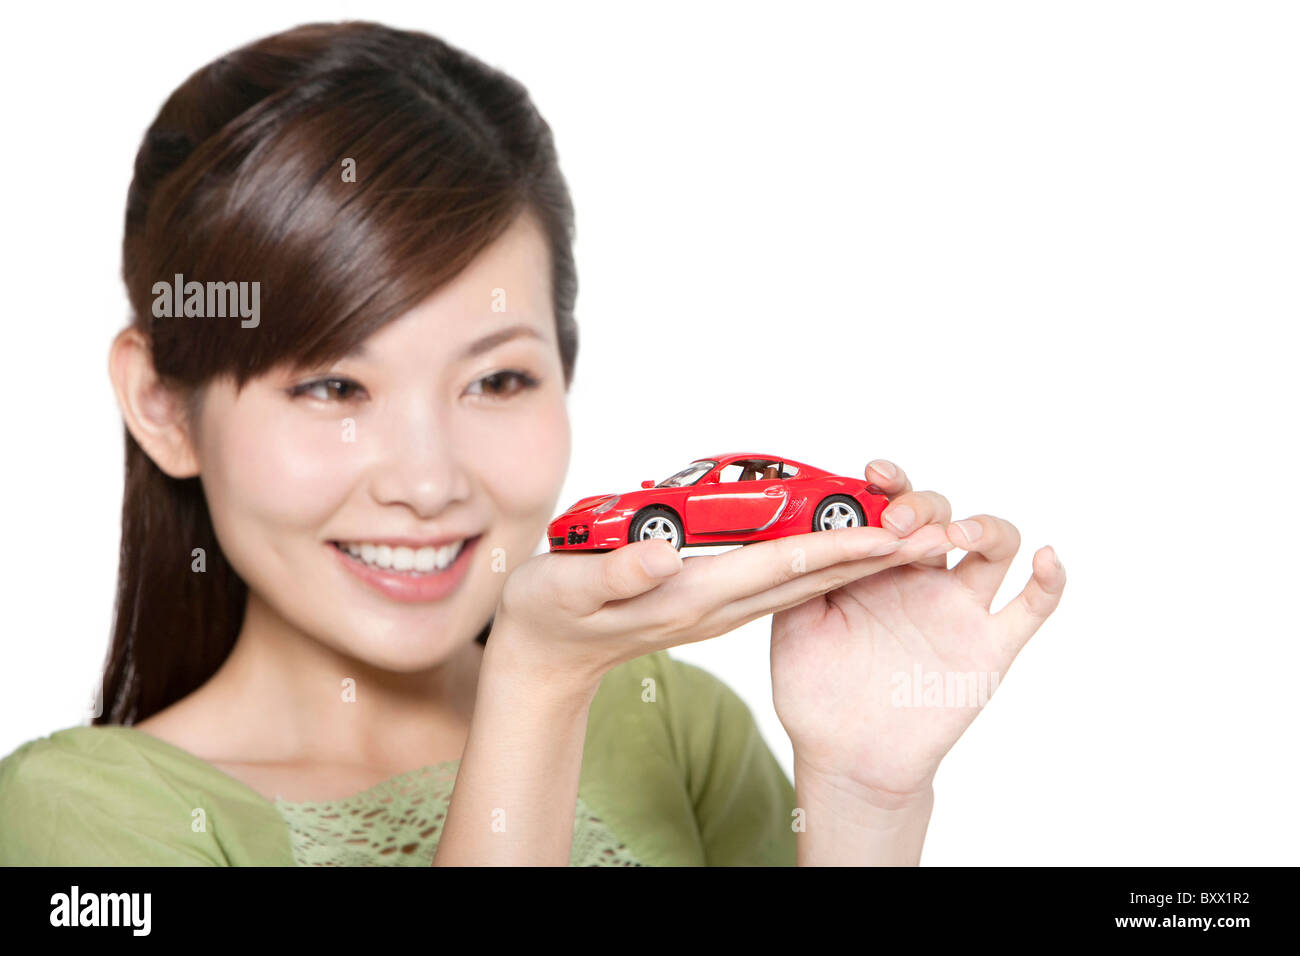 Portrait of Young Woman with Toy Car - Stock Image